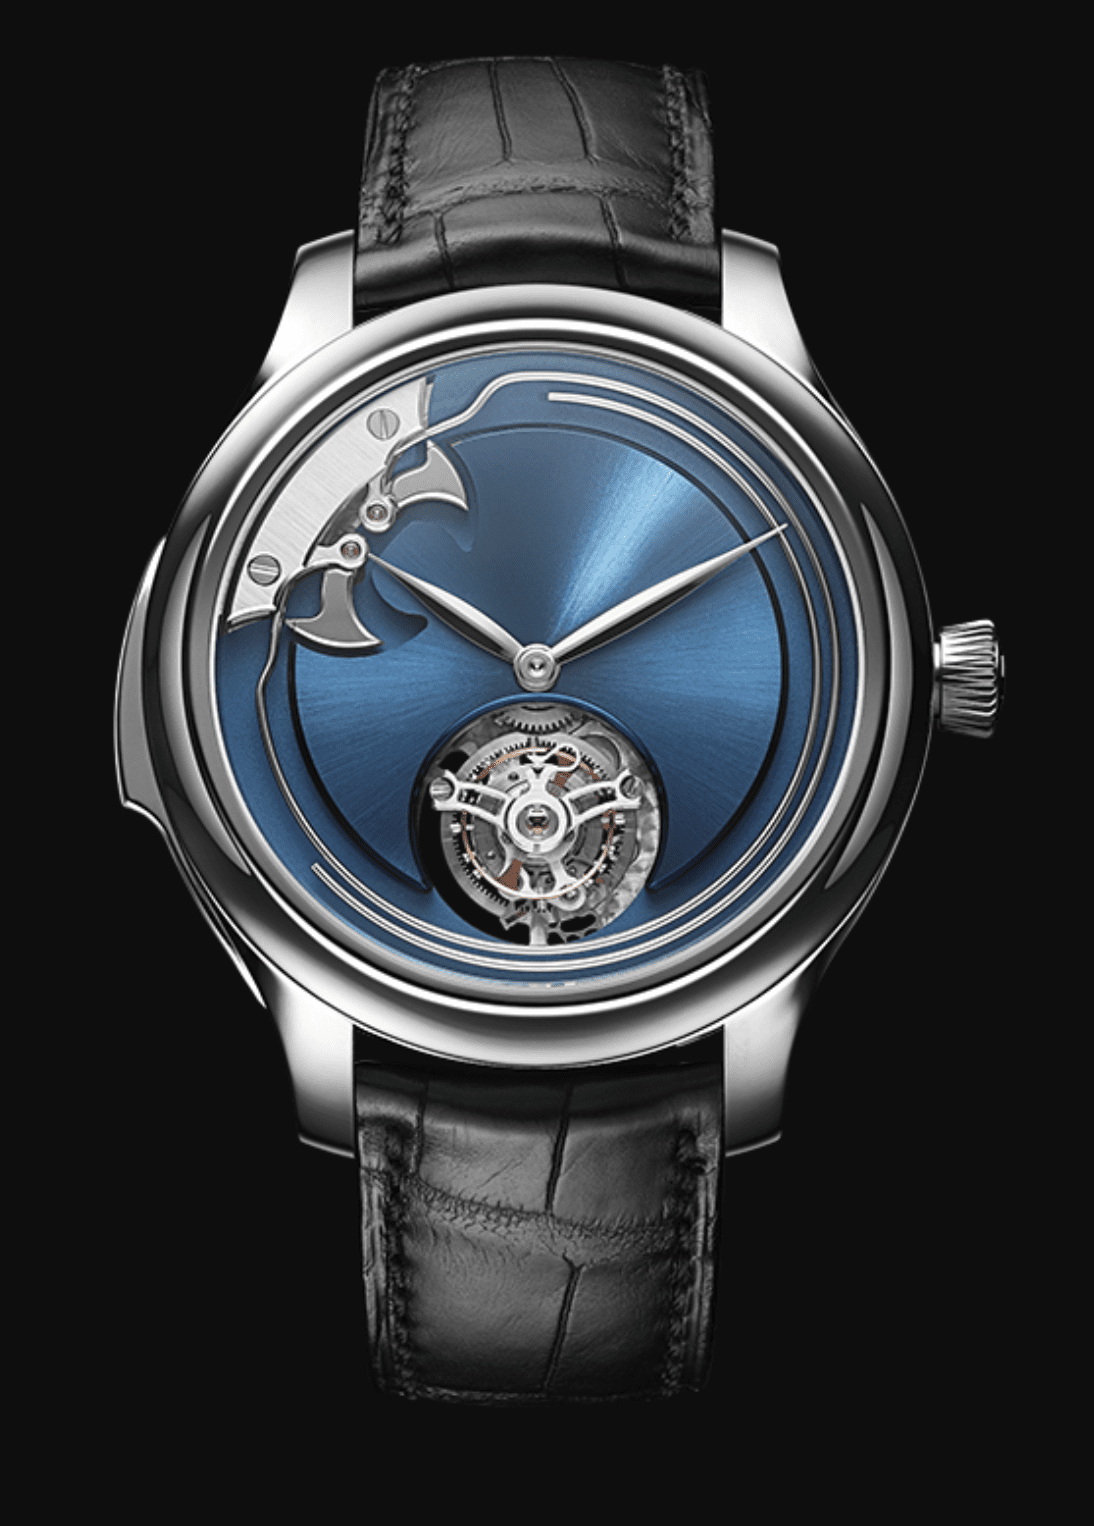 H Moser Endeavor Minute Repeater